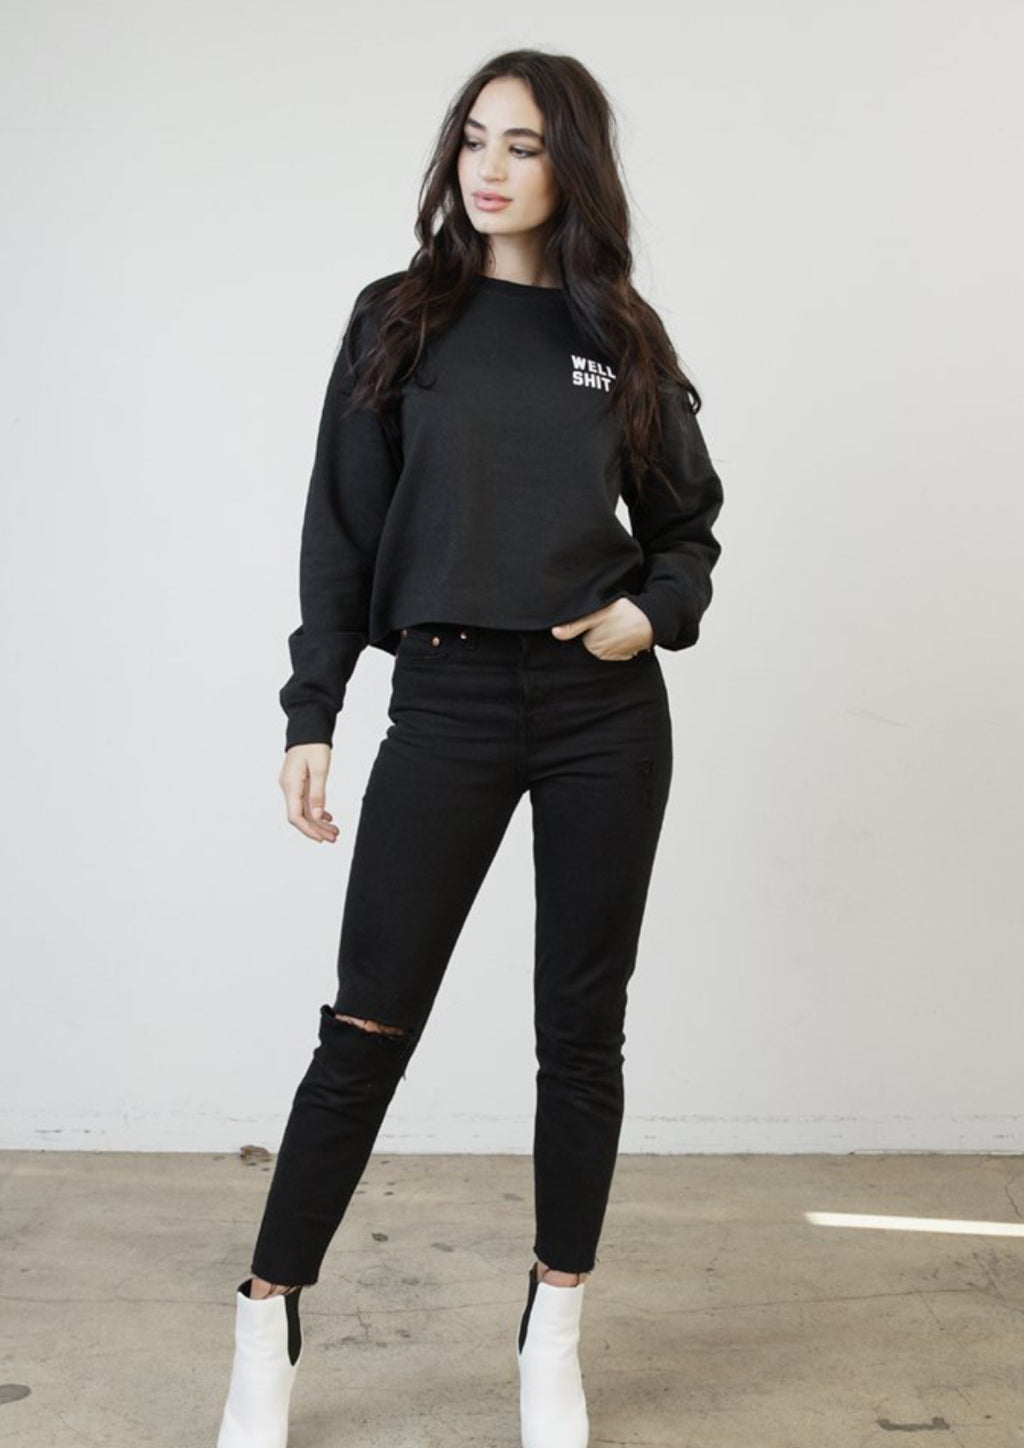 Well Shit Raw Hem Black Sweatshirt